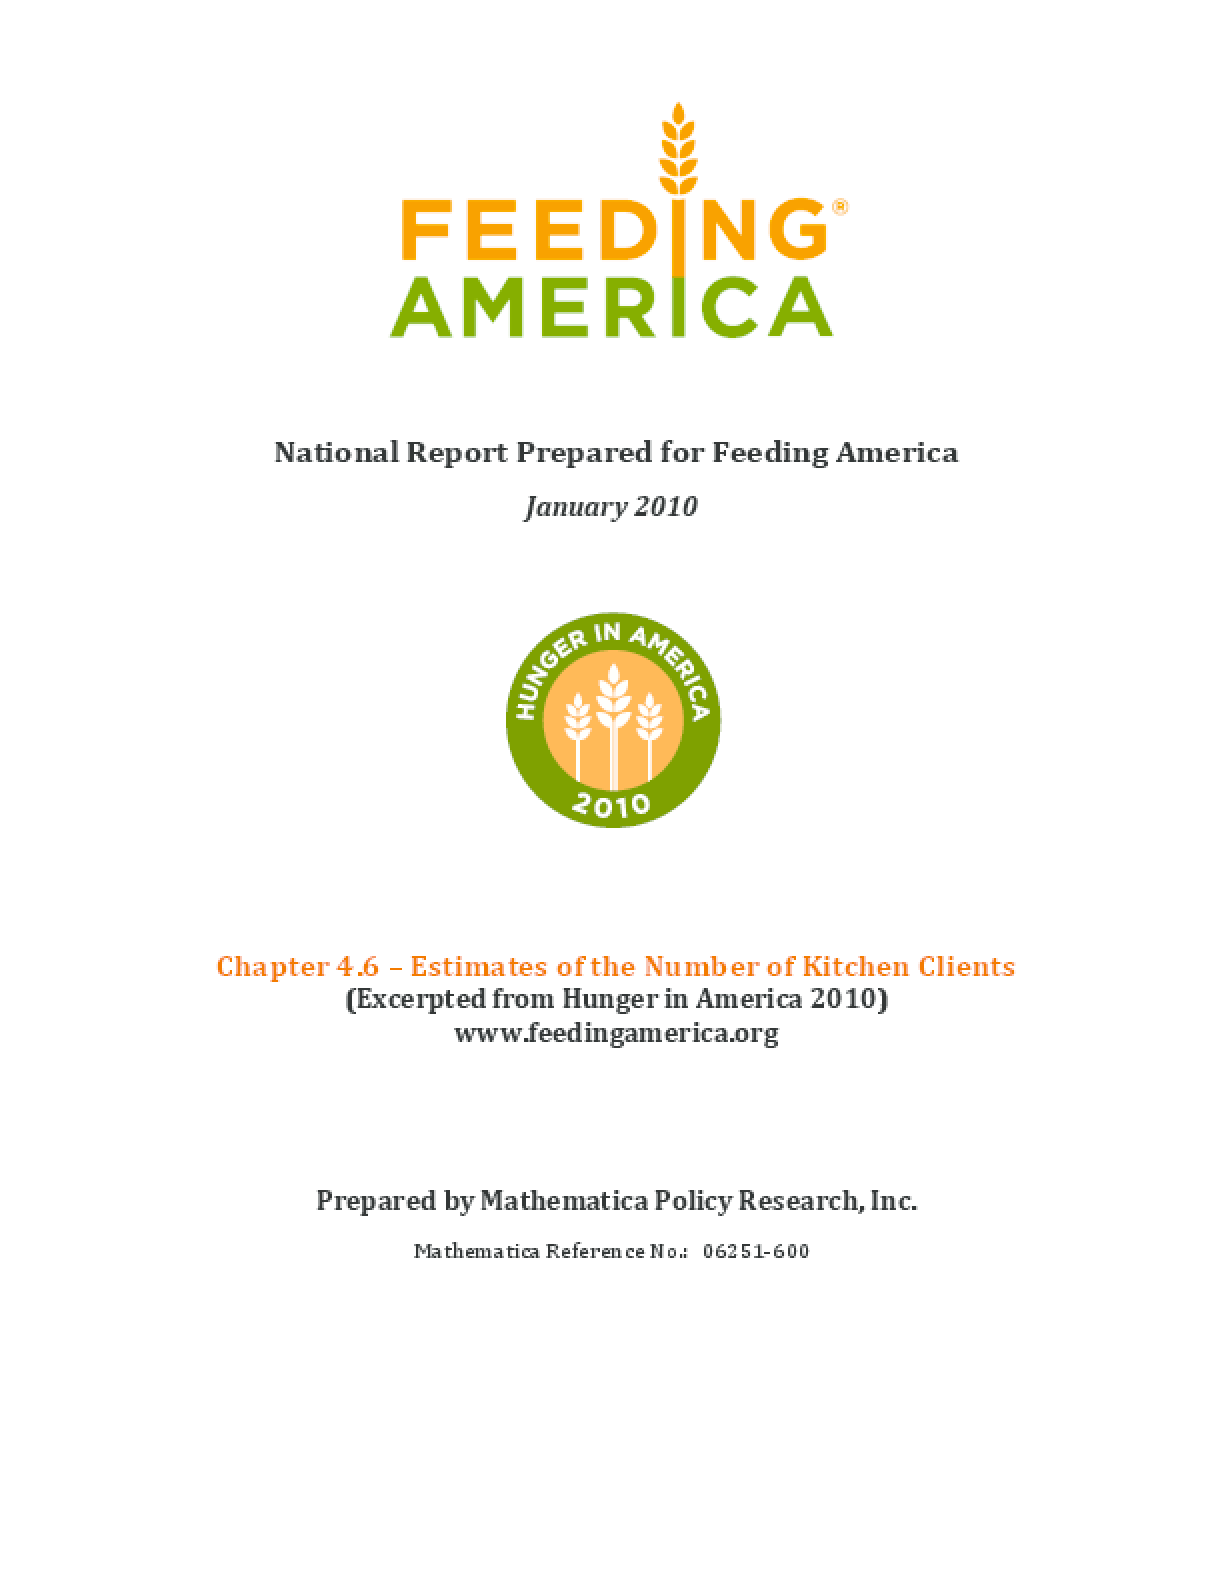 Estimates of the Number of Clients Served by Kitchens in the Feeding America Network